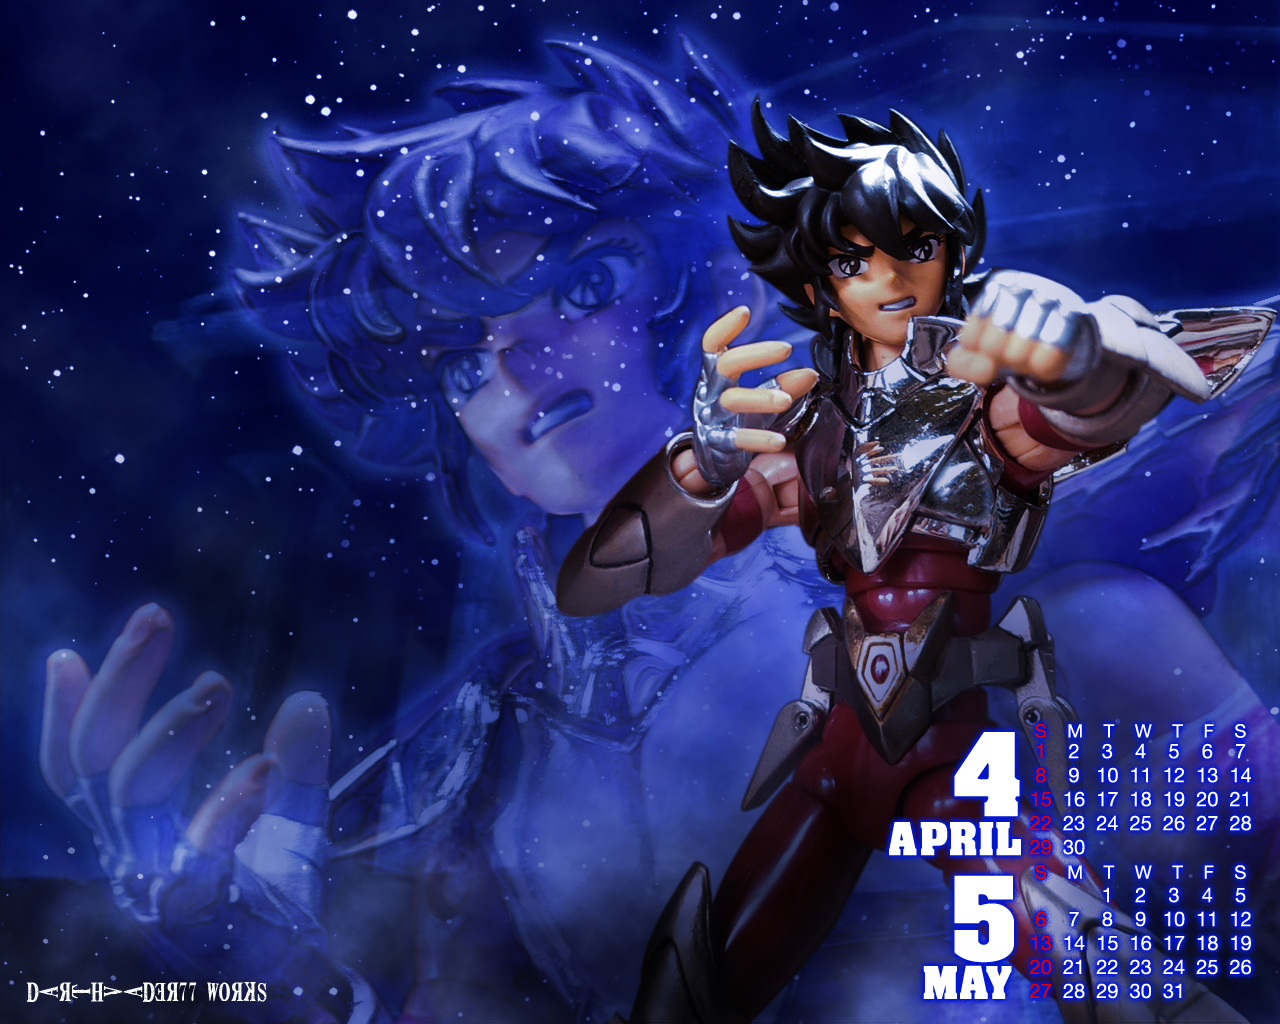 Superhero Wallpapers-Saint Seiya 4